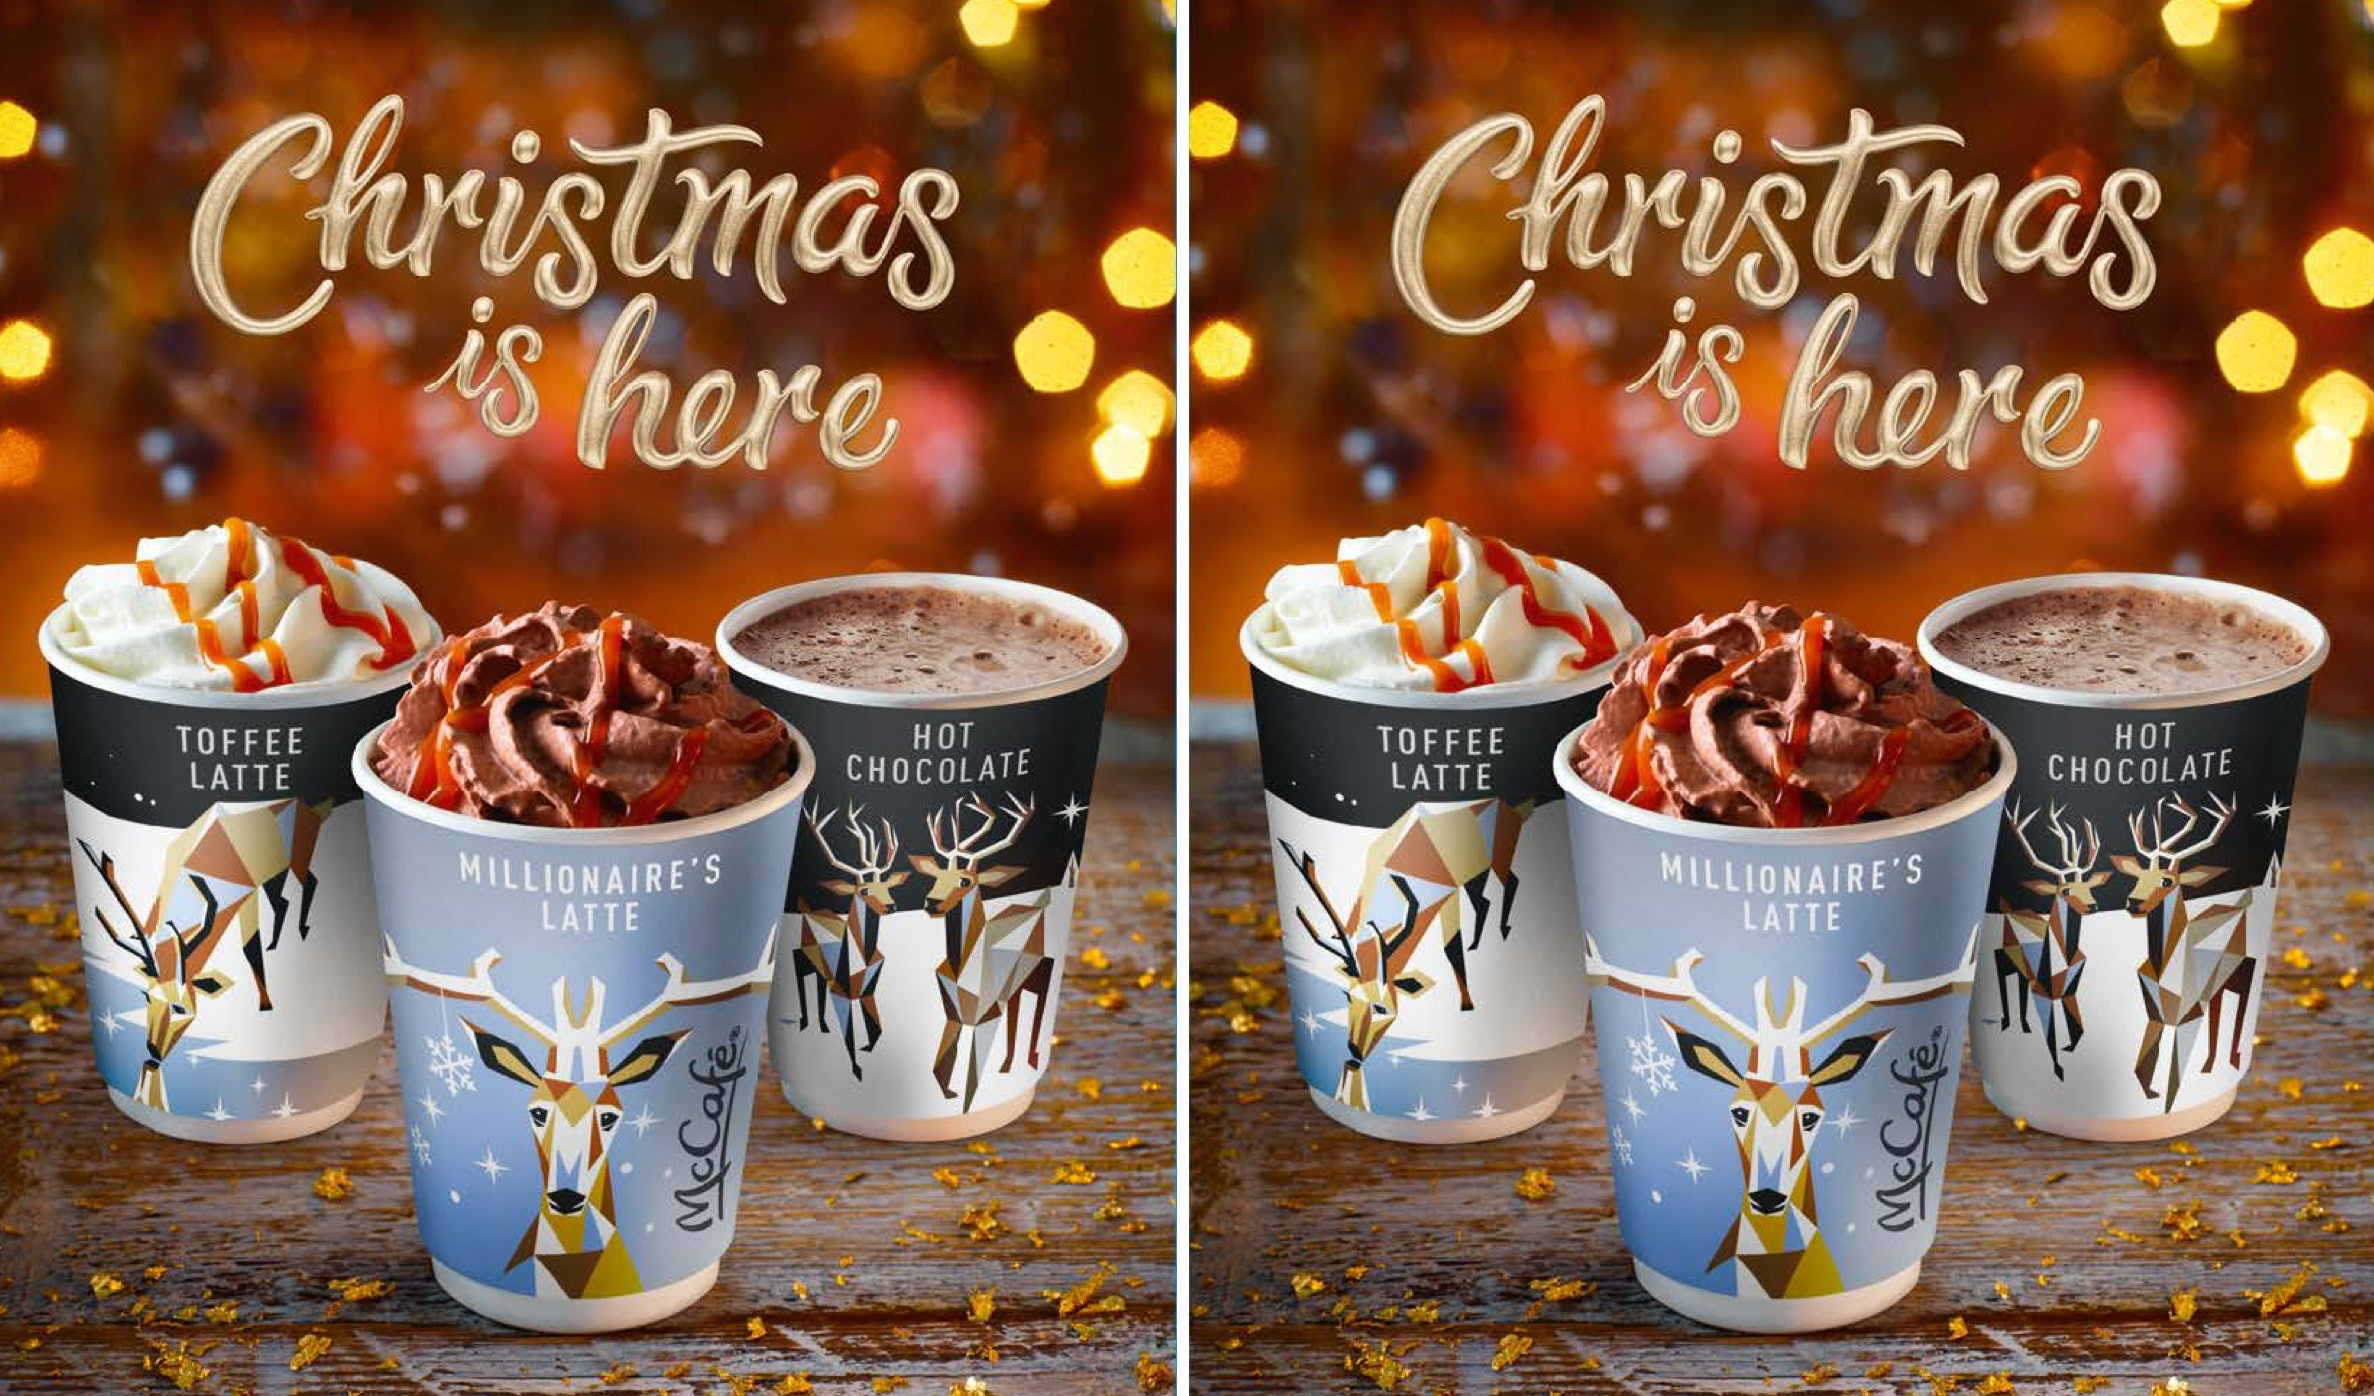 Mcdonalds Christmas Eve Hours.Mcdonald S 2018 Christmas Drinks In The Uk Look Absolutely